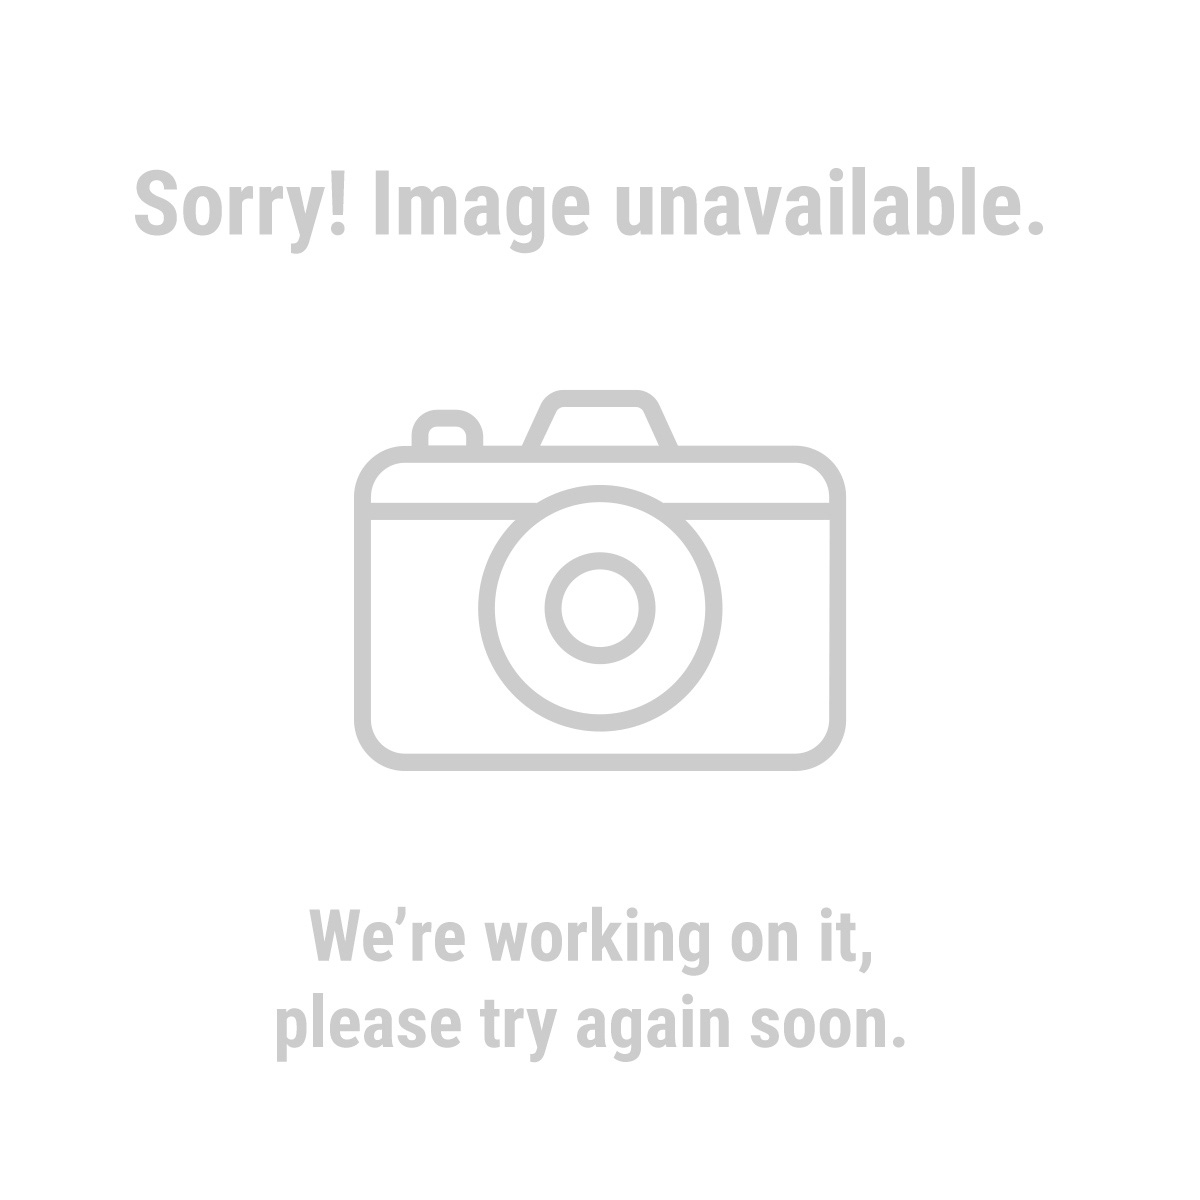 9000 lb. Off-Road Vehicle Winch with Automatic Load-Holding Brake